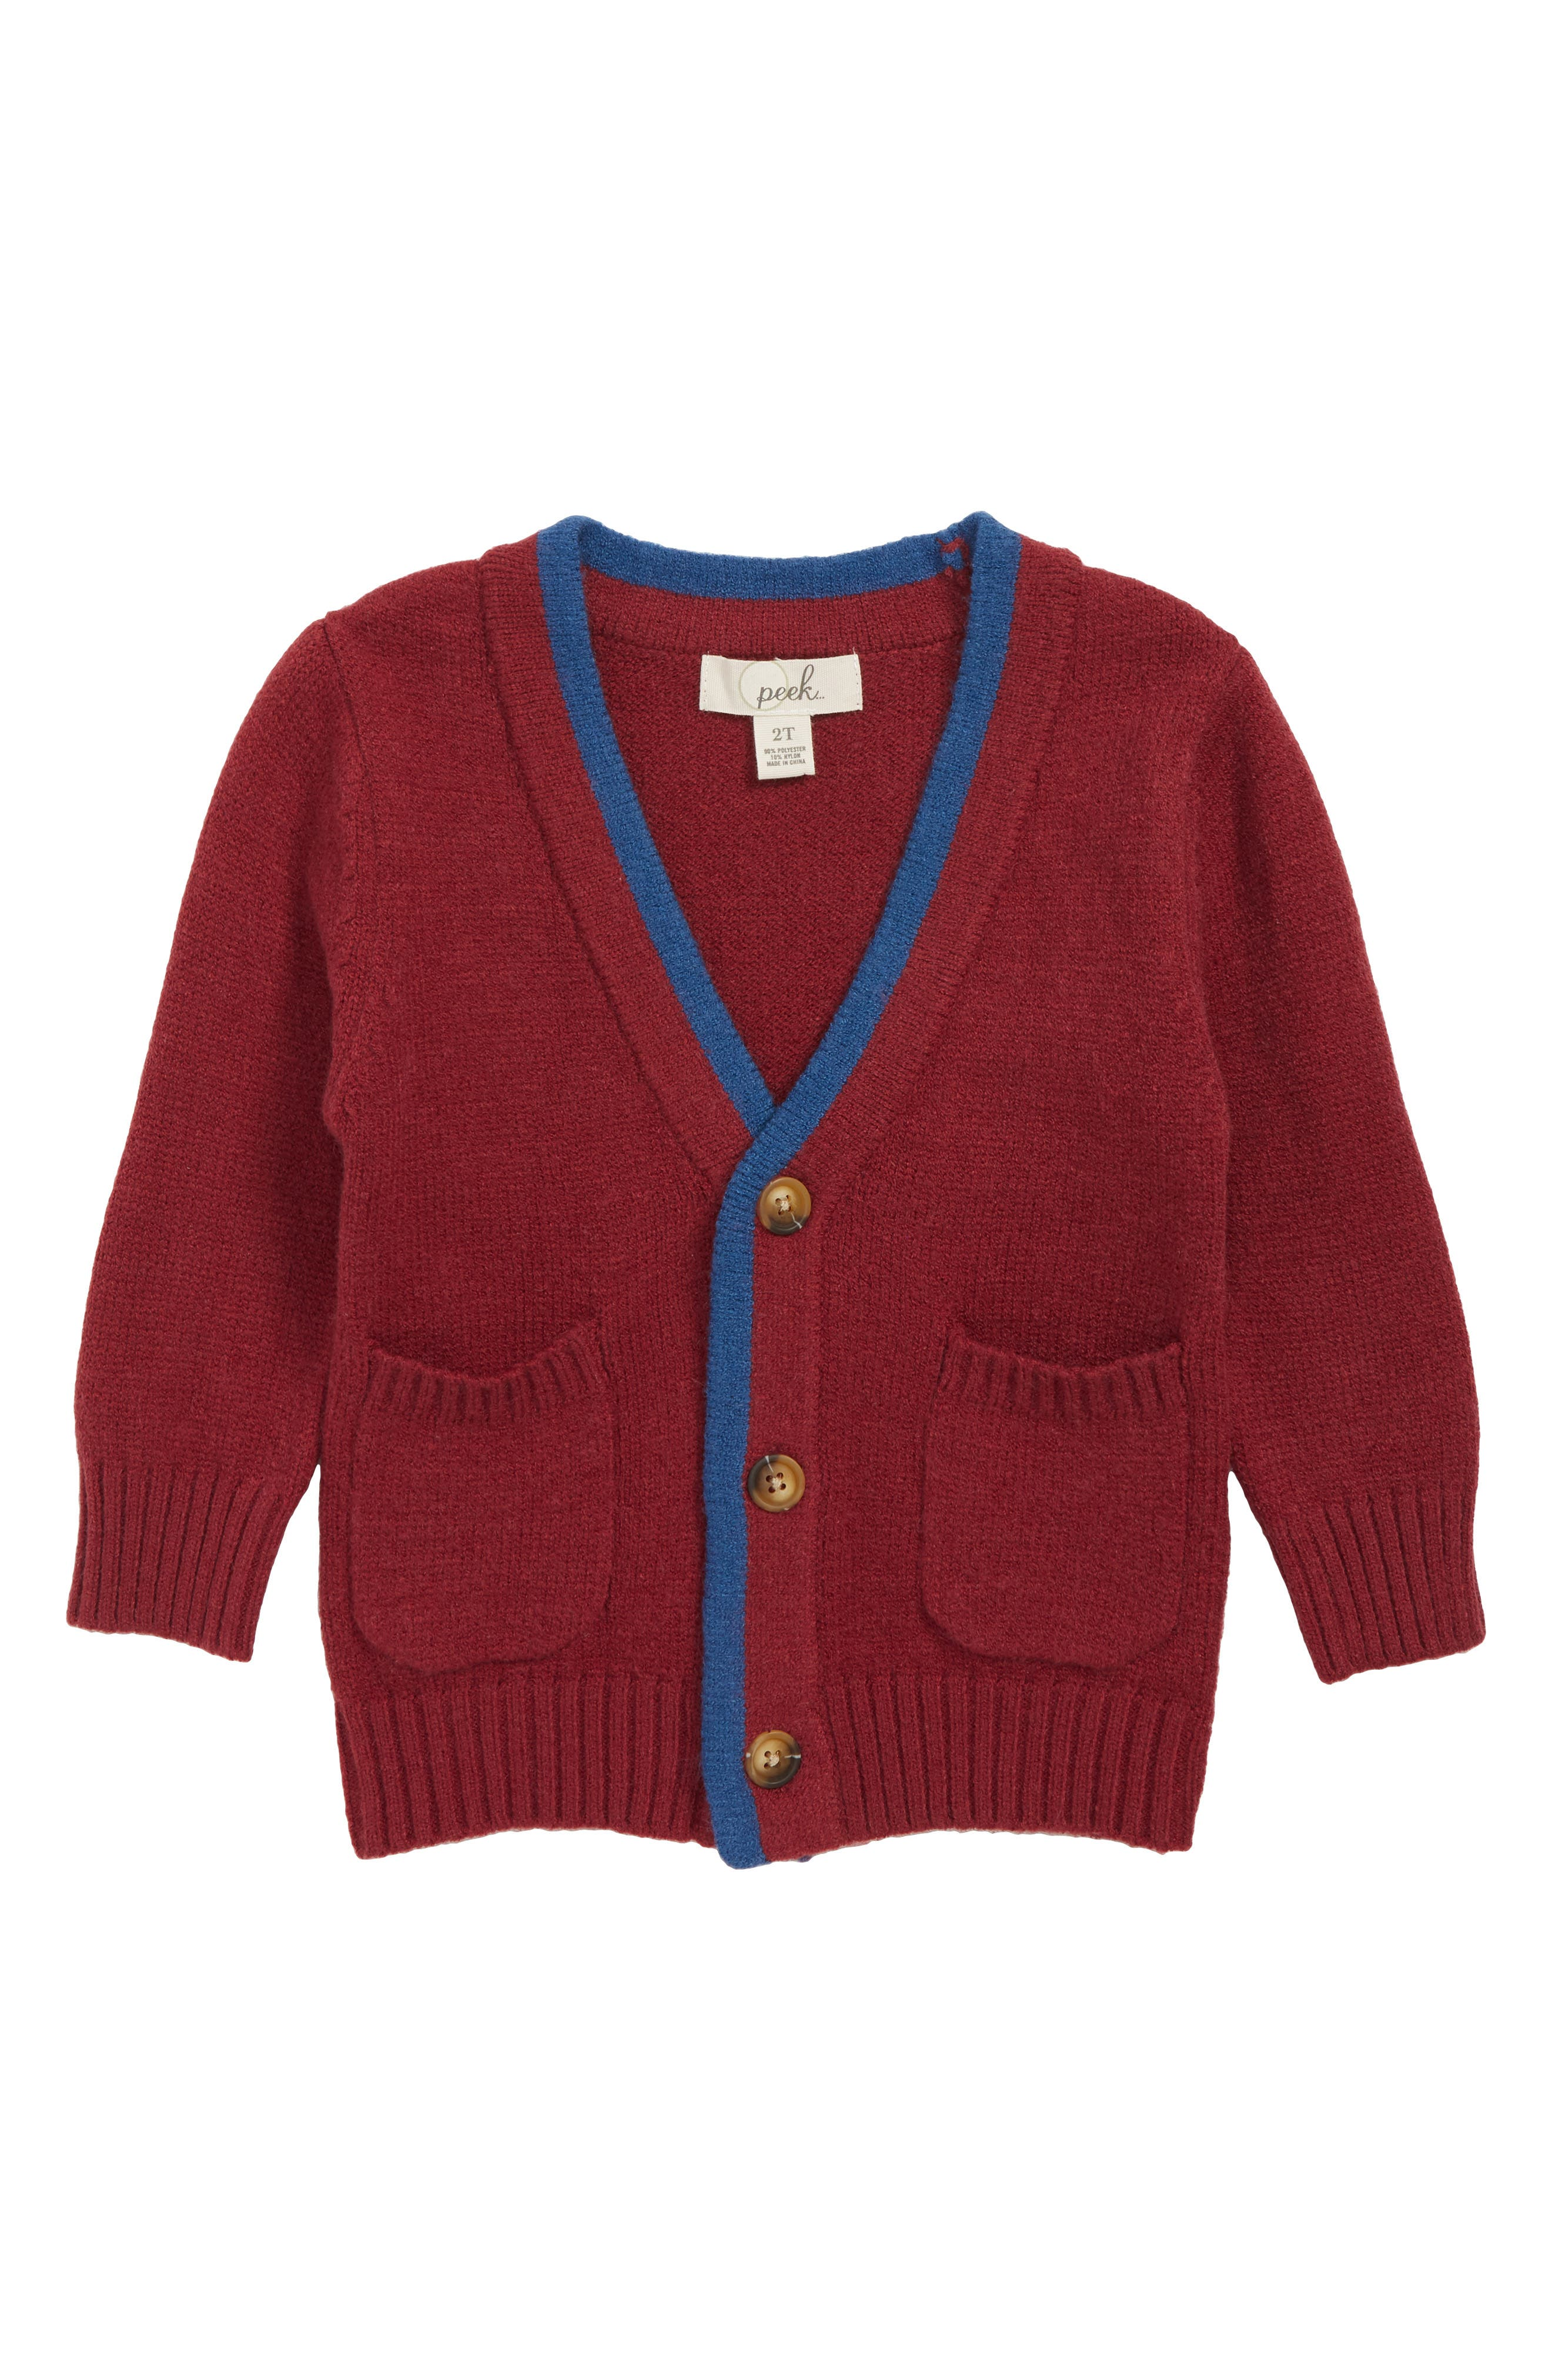 Kids 1950s Clothing & Costumes: Girls, Boys, Toddlers Toddler Boys Peek Preston Cardigan Size 2T - Burgundy $25.20 AT vintagedancer.com